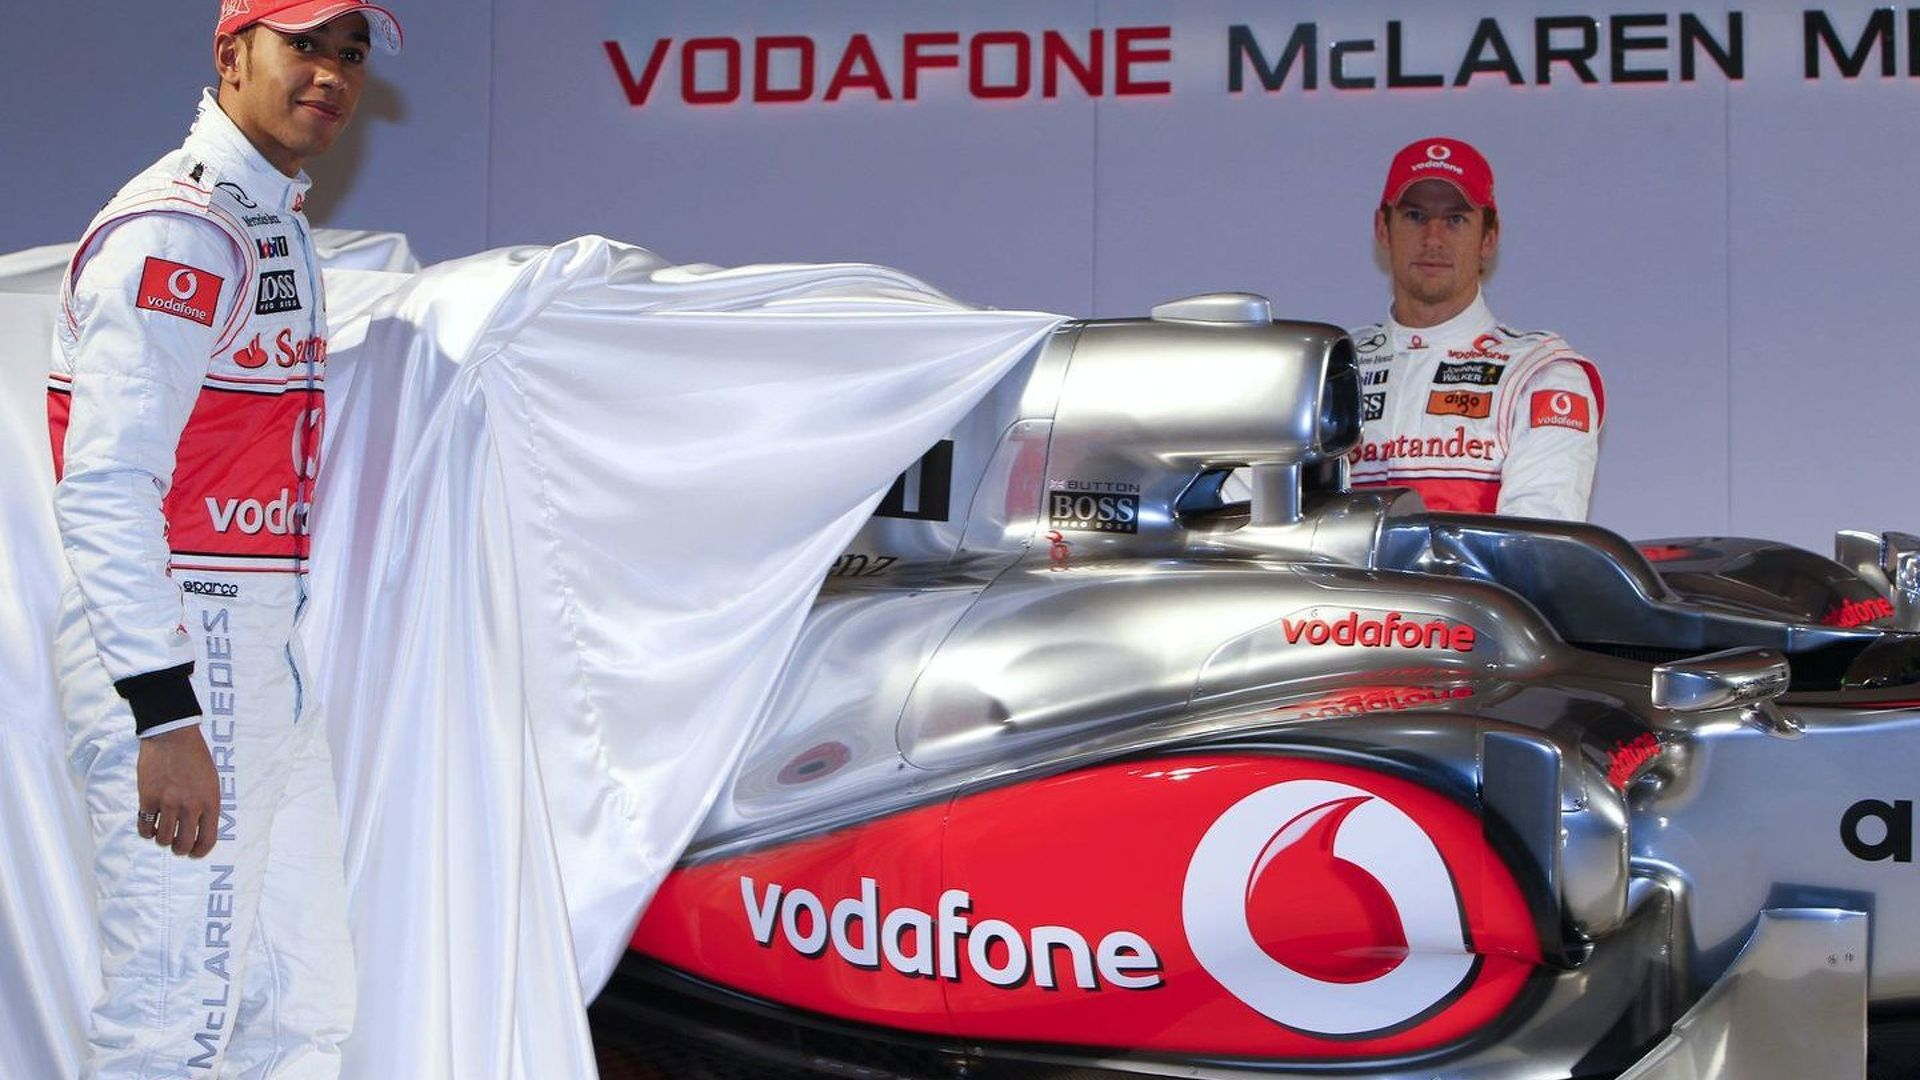 McLaren keeping chrome livery for 2011